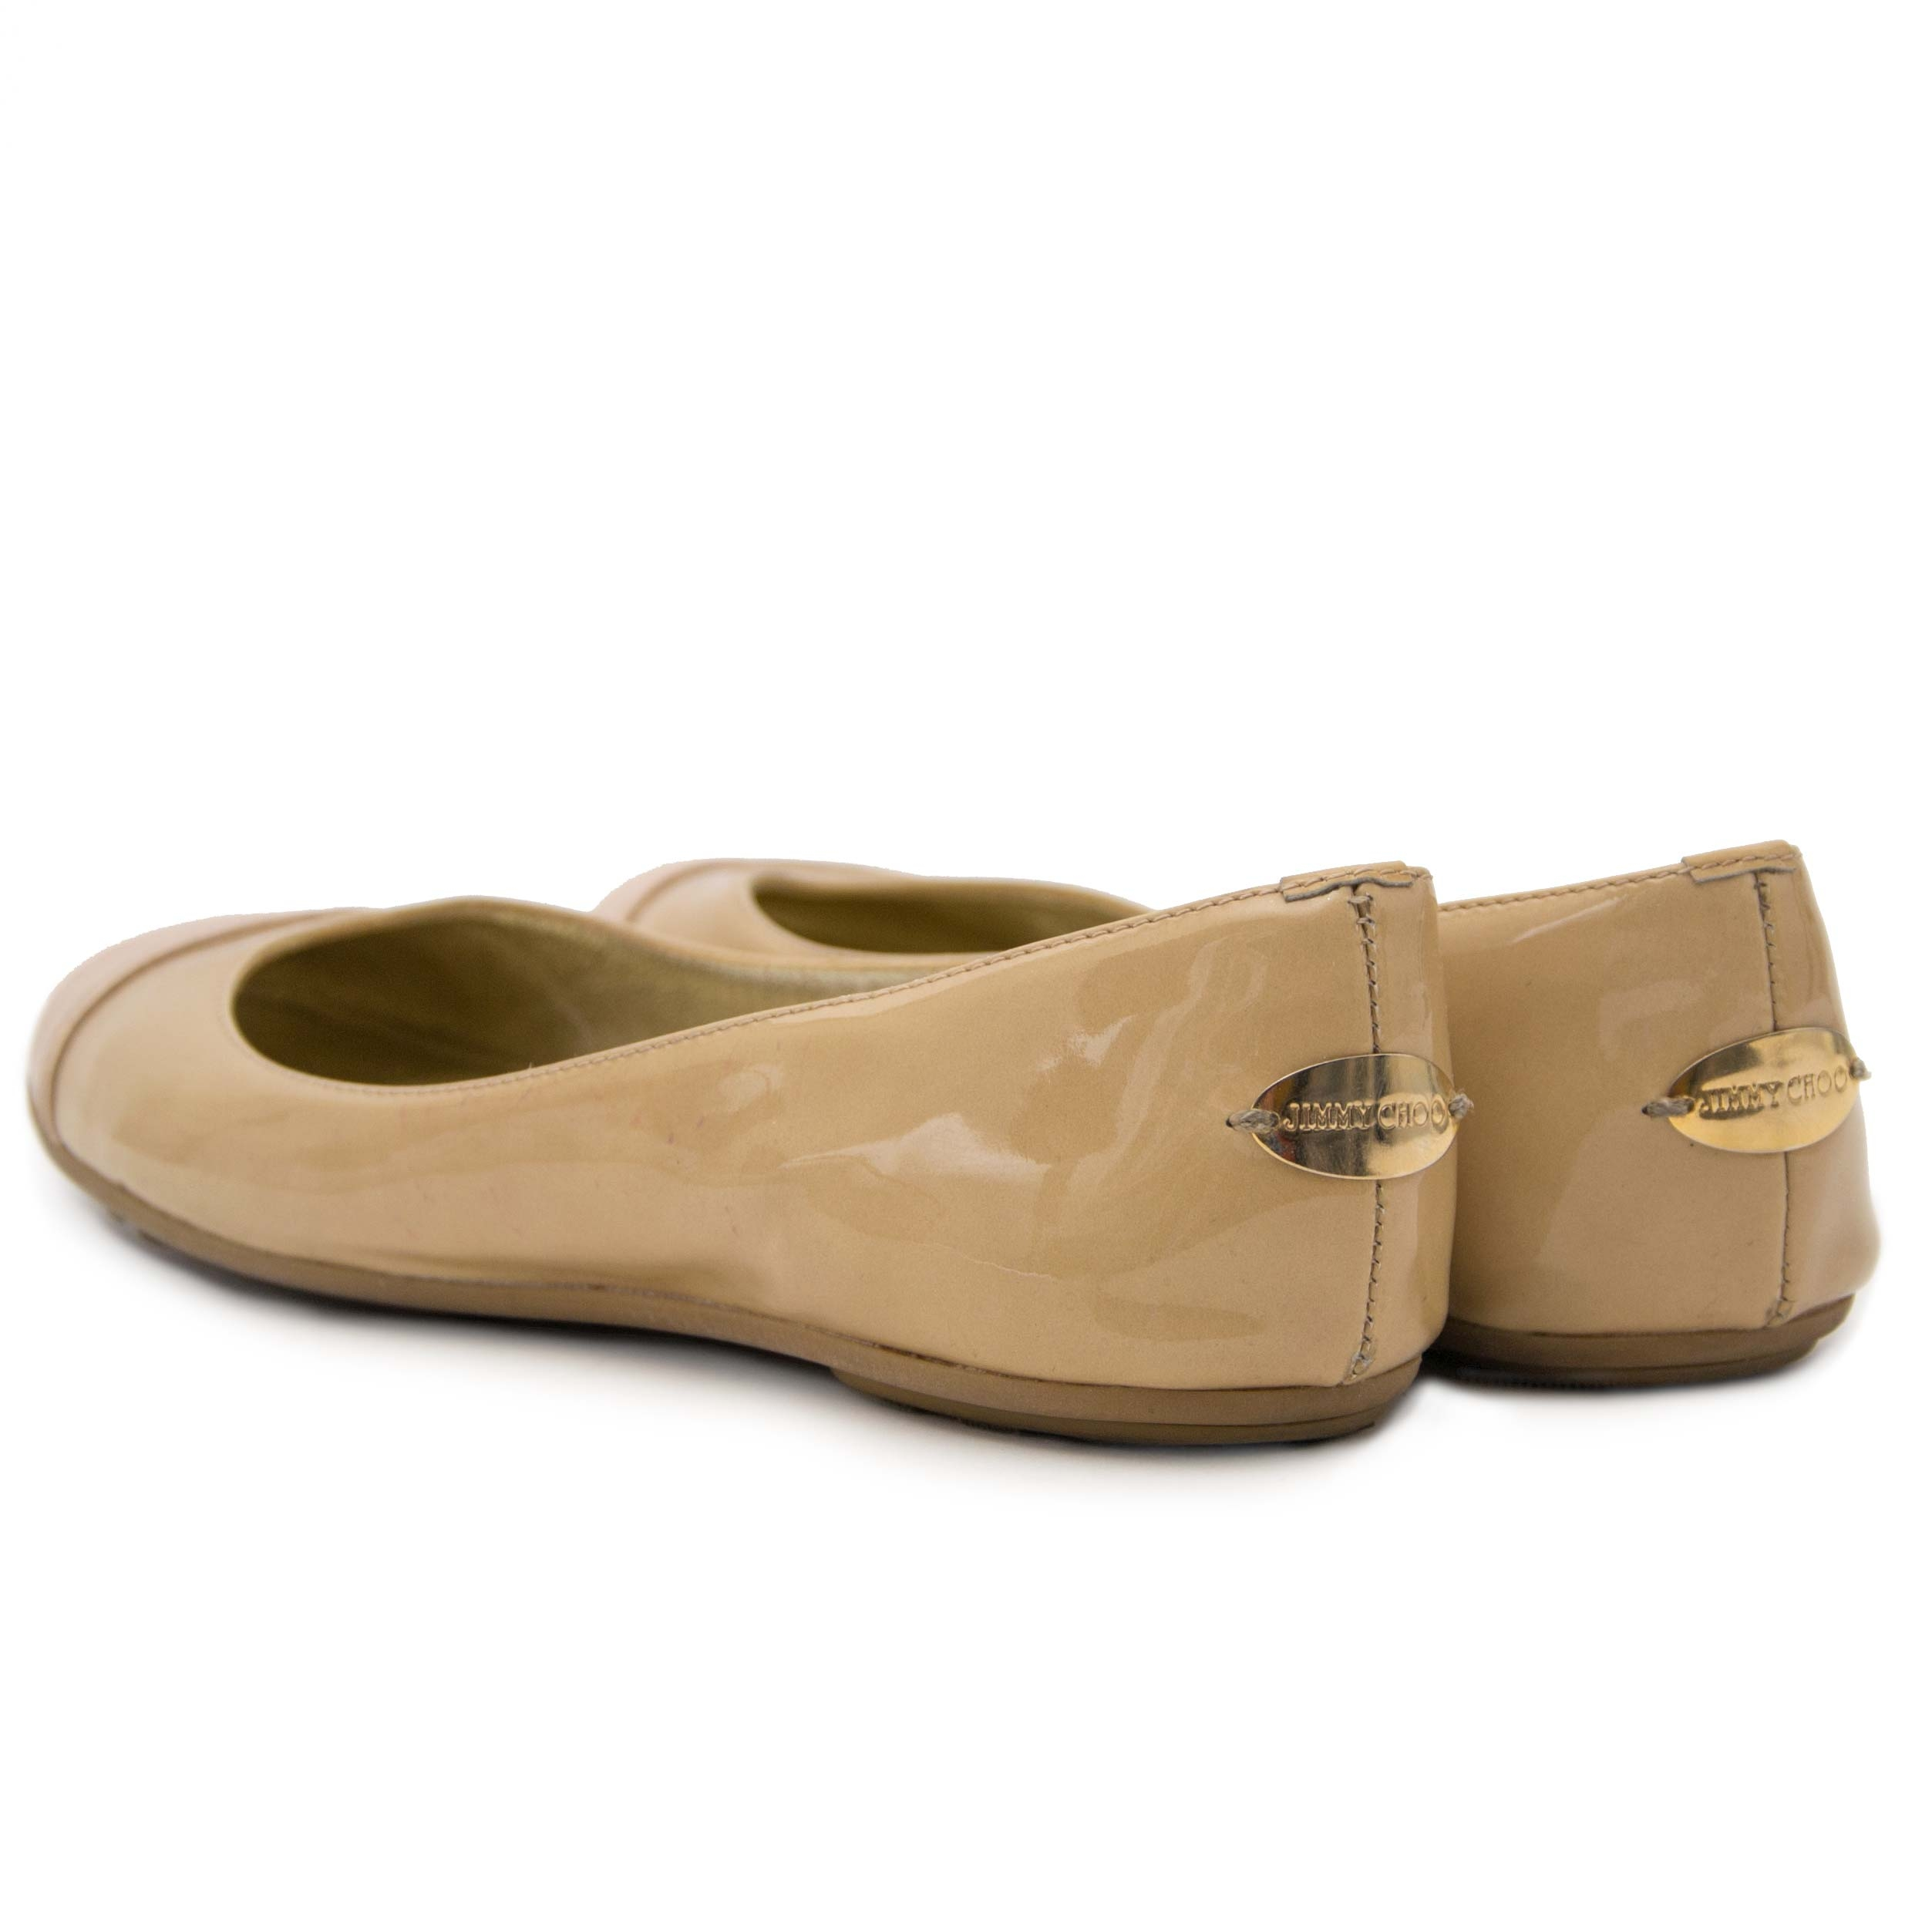 eab3bdf3945 Buy authentic Jimmy Choo at the best price at Labellov. Safe and secure  shopping.